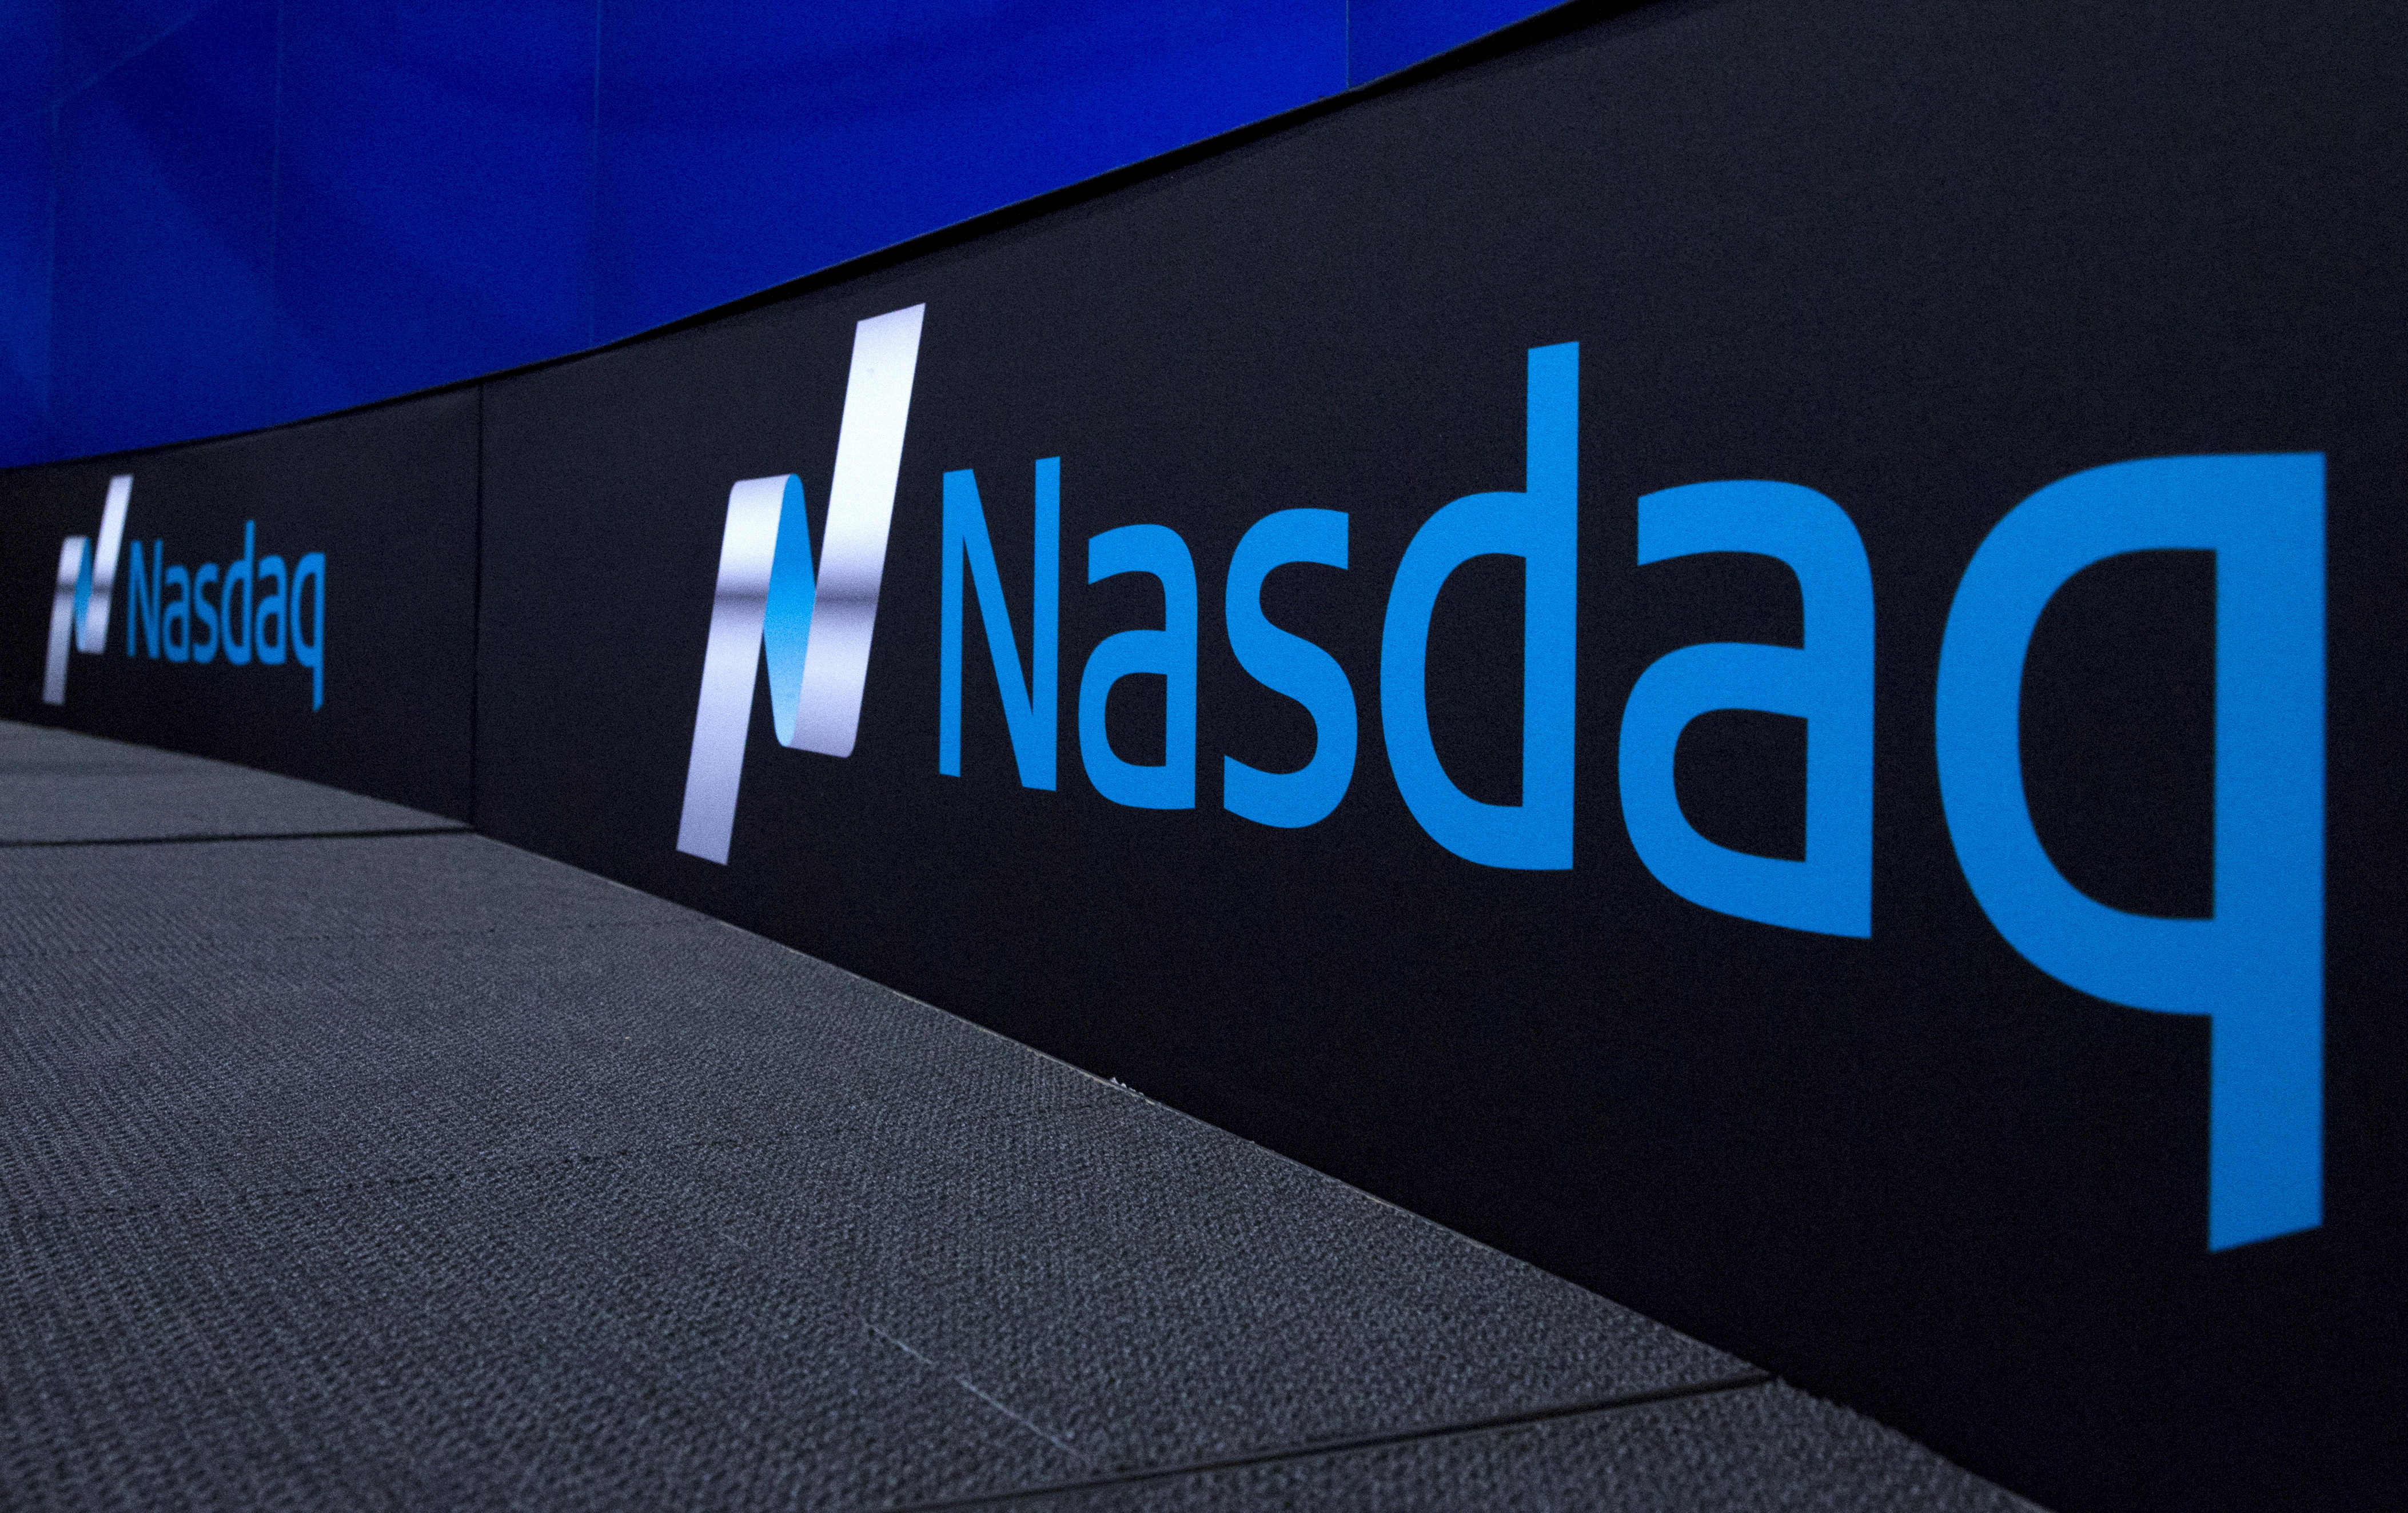 FILE PHOTO: The Nasdaq logo is displayed at the Nasdaq Market site in New York September 2, 2015. REUTERS/Brendan McDermid/File Photo/File Photo